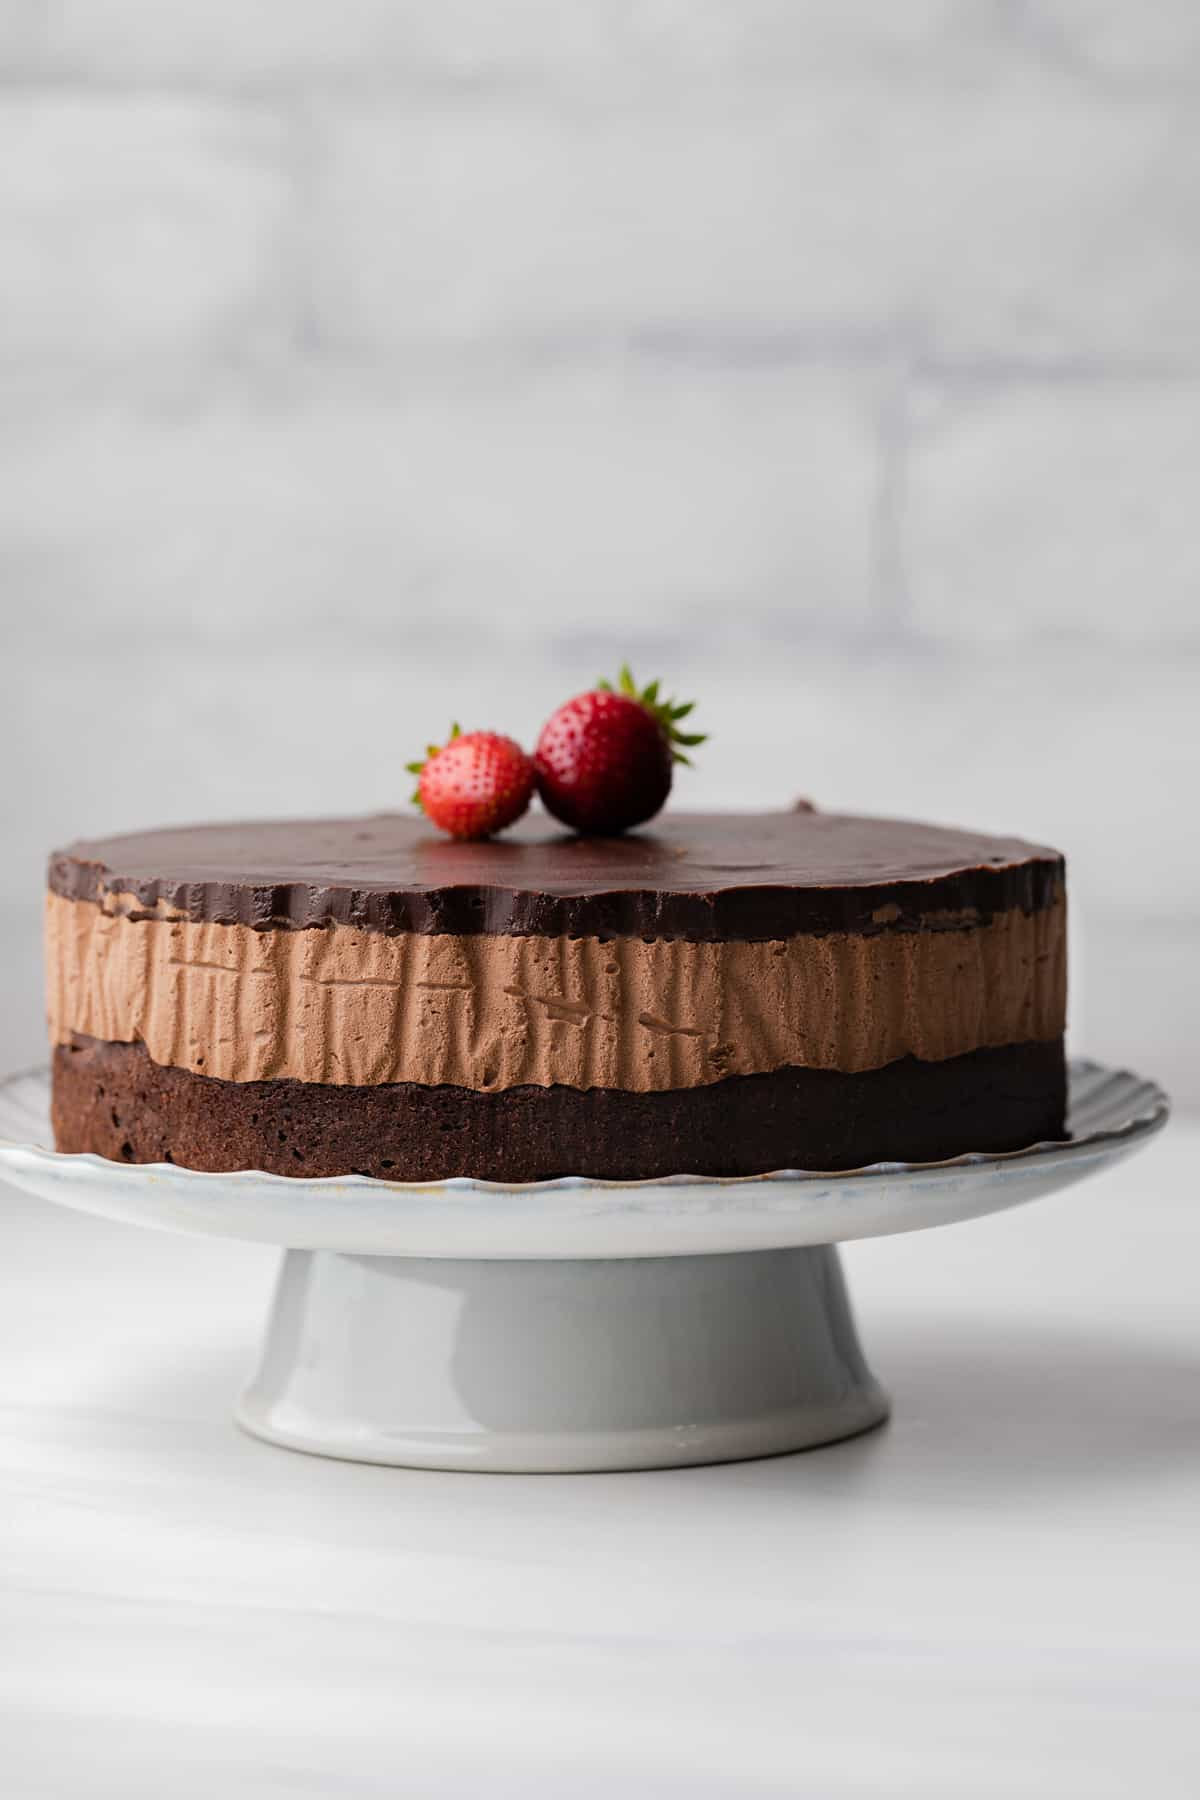 Triple chocolate mousse cake on a white cake stand with large strawberries stacked on top of the cake.